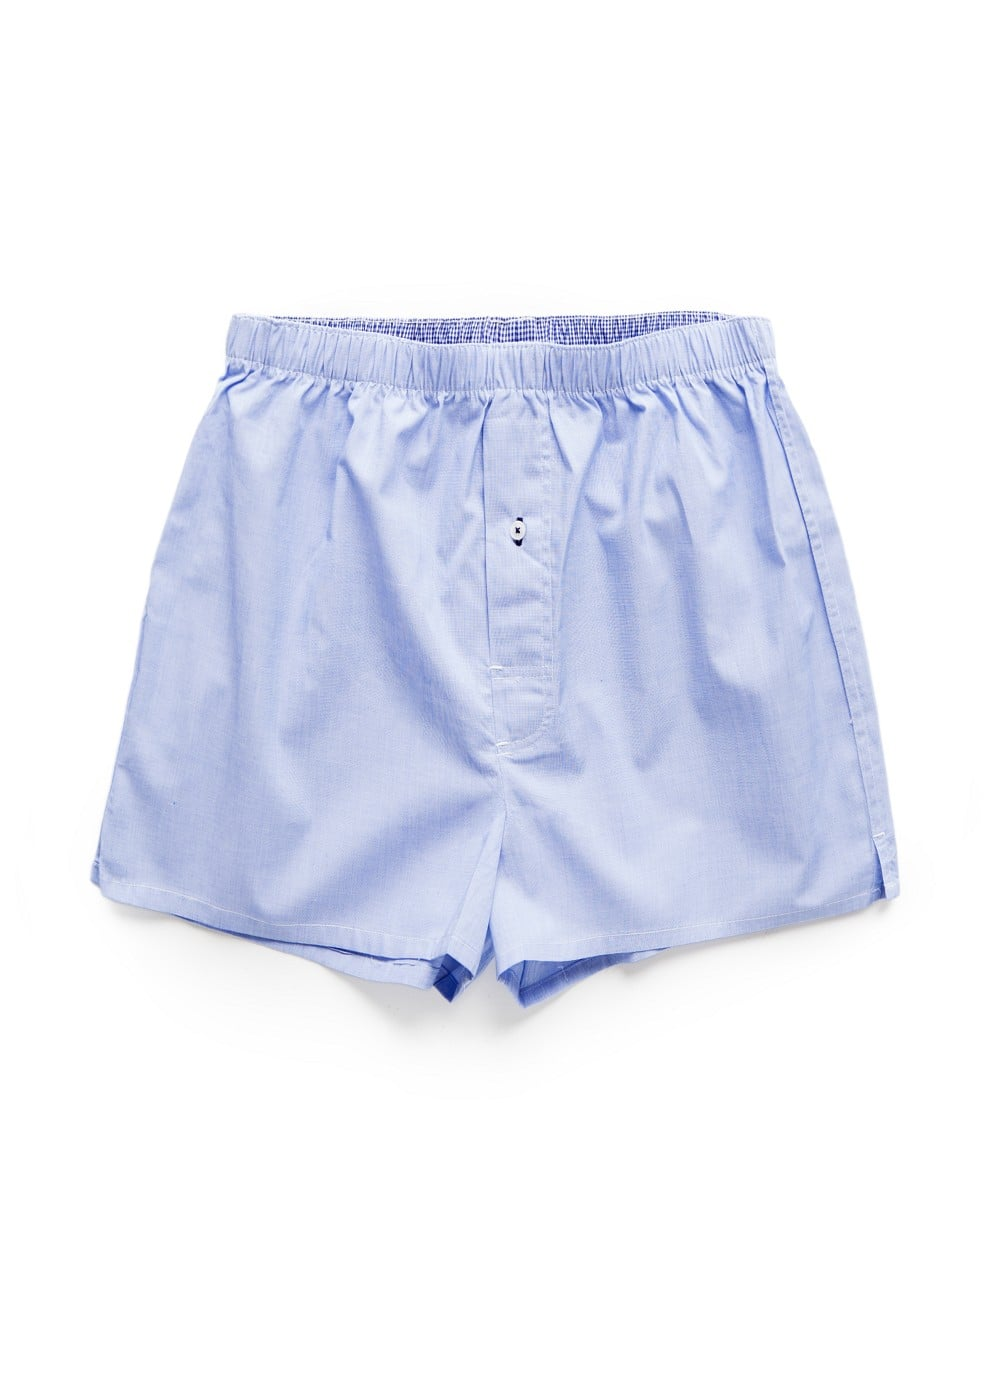 End-on-end cotton boxer shorts